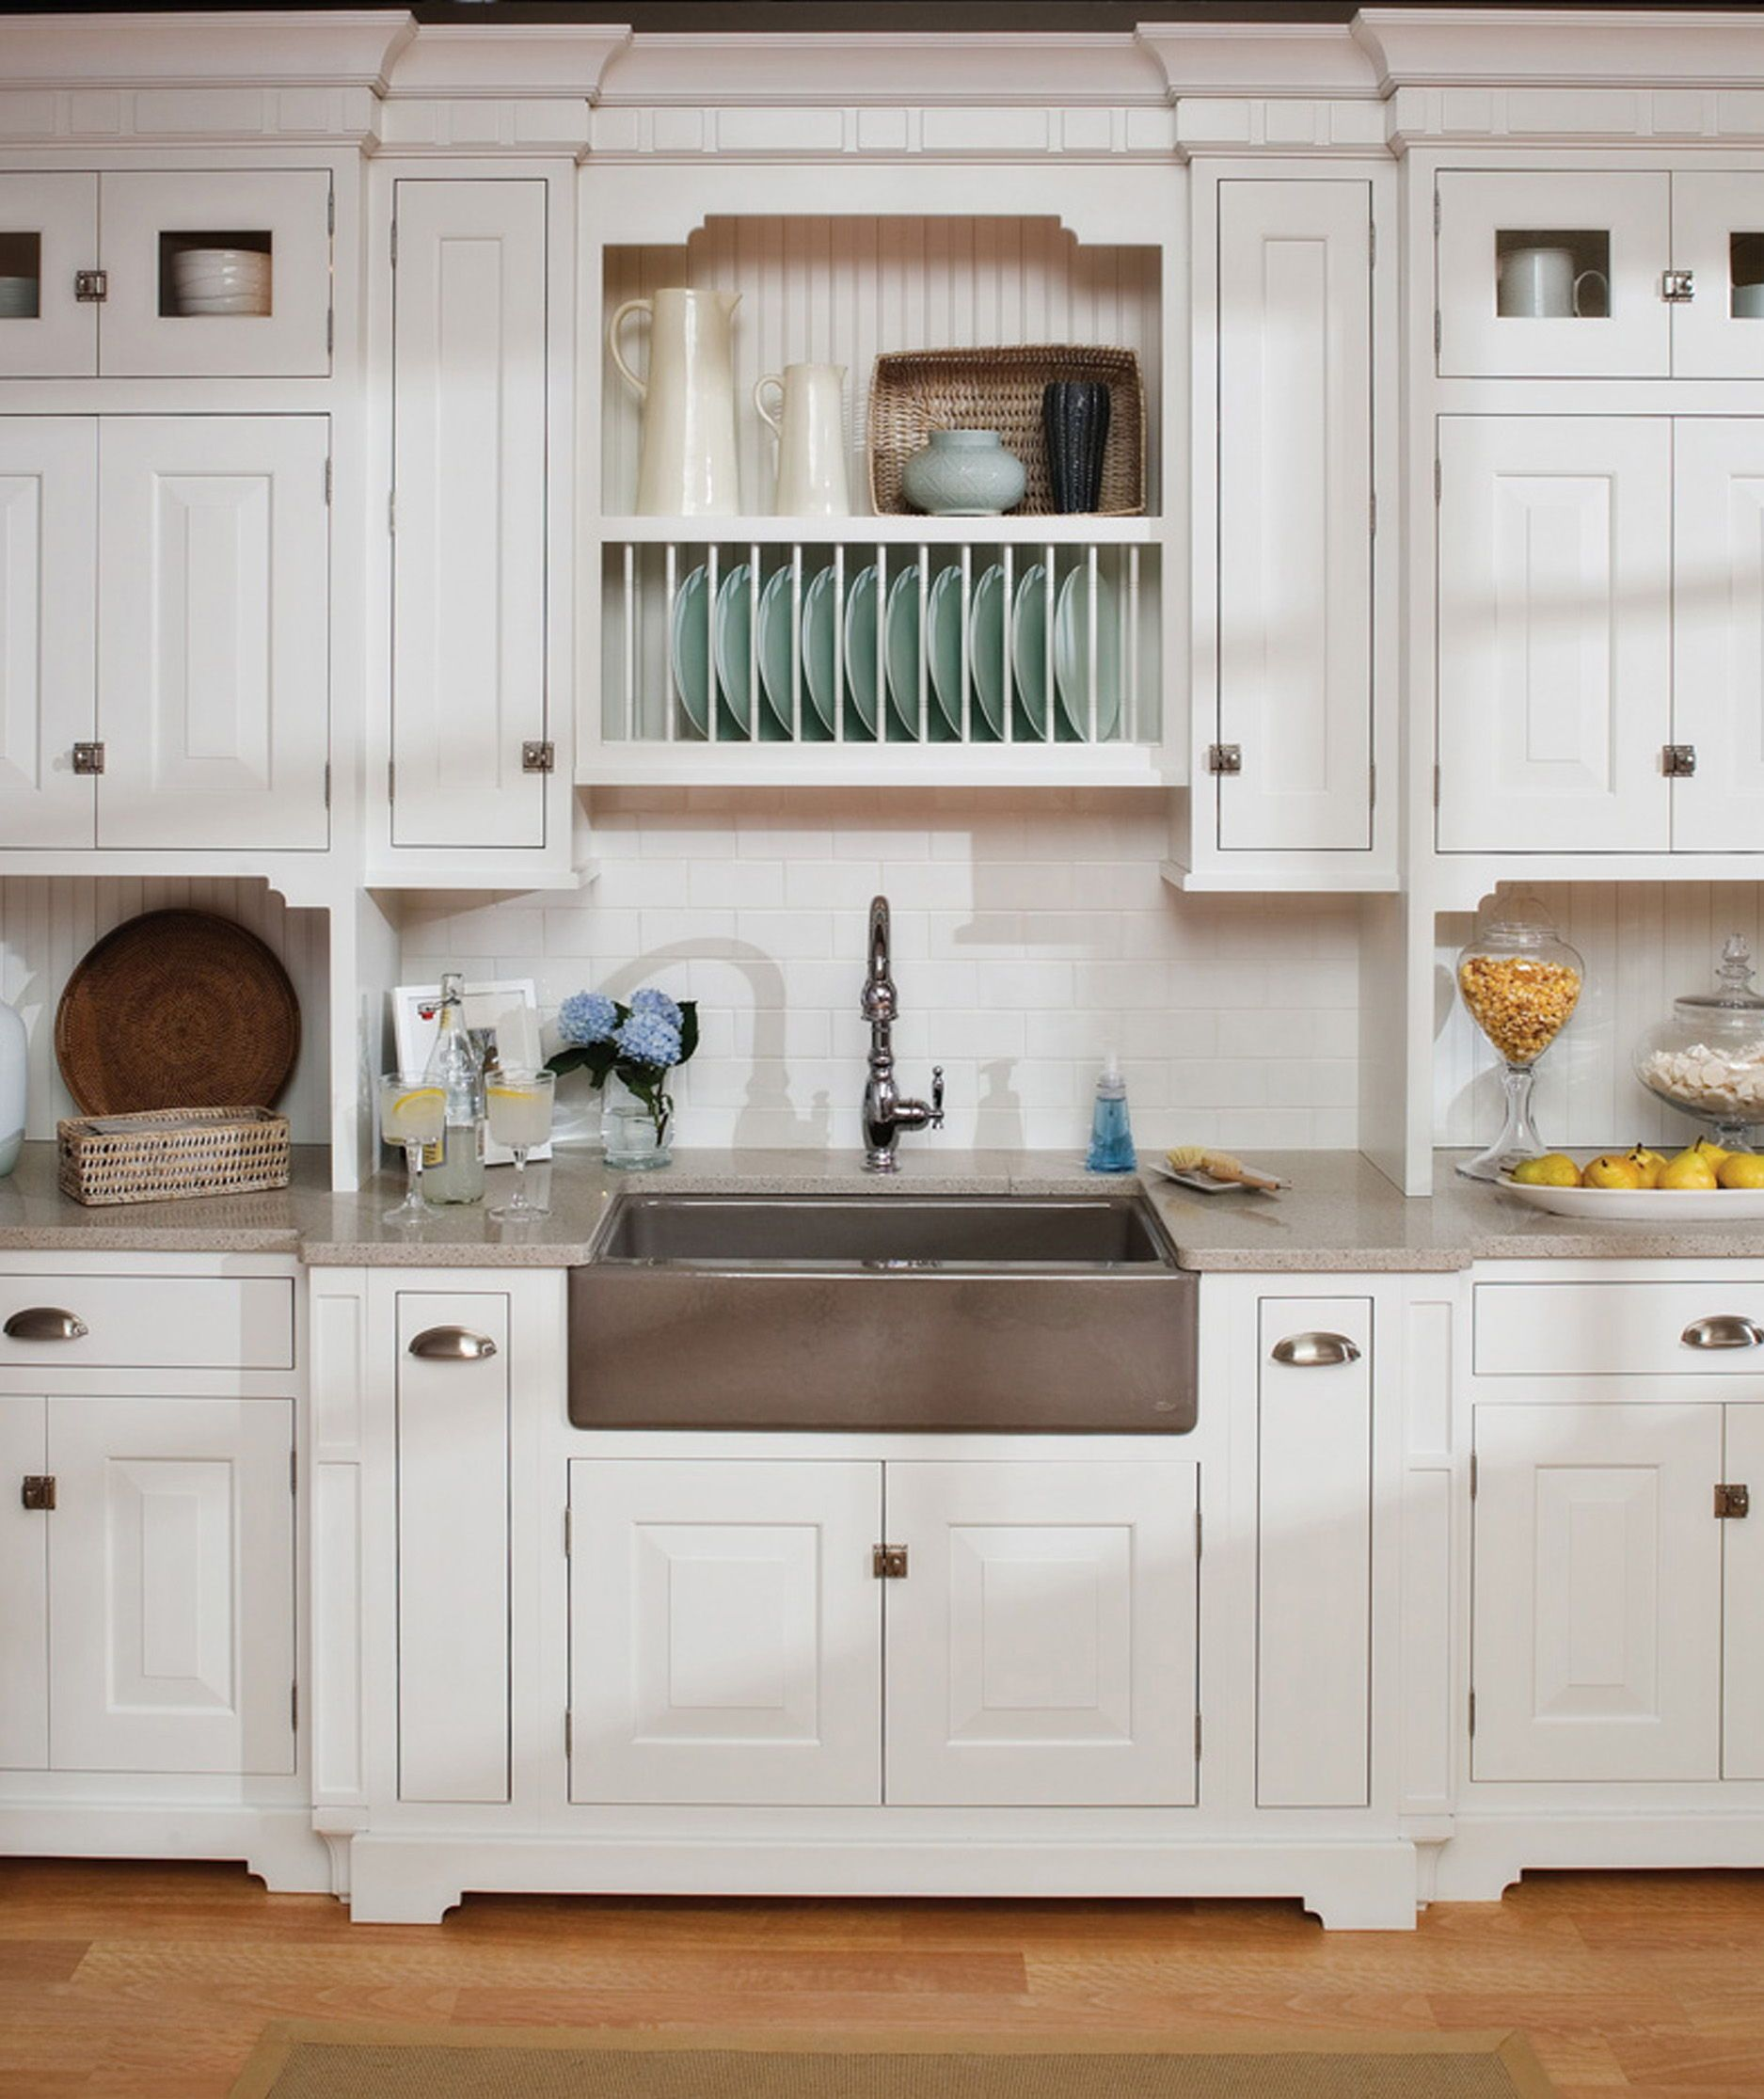 These Sugary White Cottage Styled Cabinets With Inset Doors Are Accented With A Savory Mix Of Kitchen Cabinets Home Depot Home Kitchens Cottage Kitchen Decor